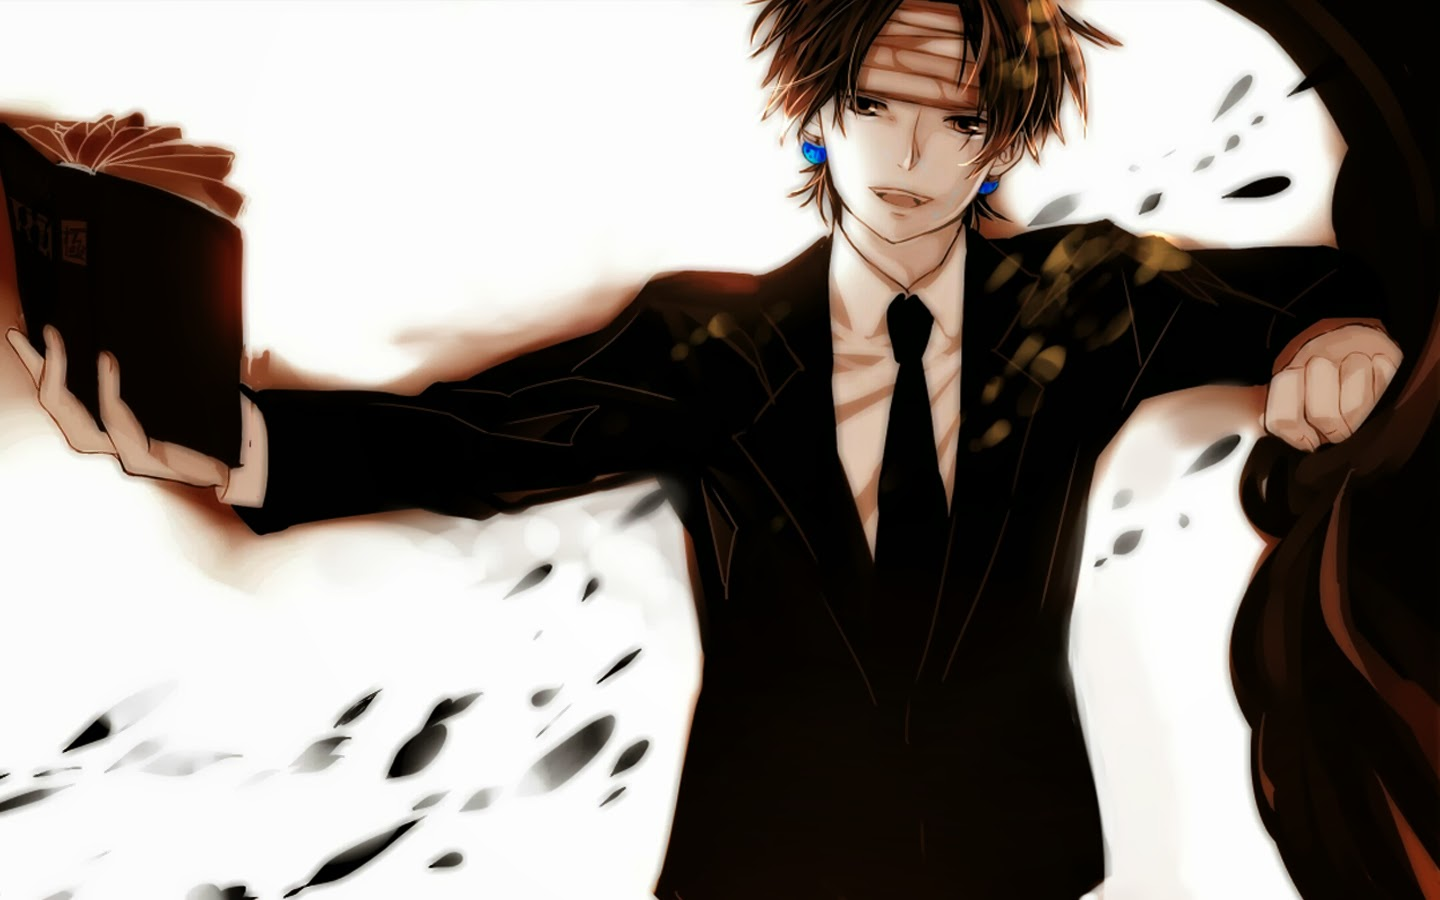 Images For Gt Chrollo Lucilfer Wallpaper Image Source From This